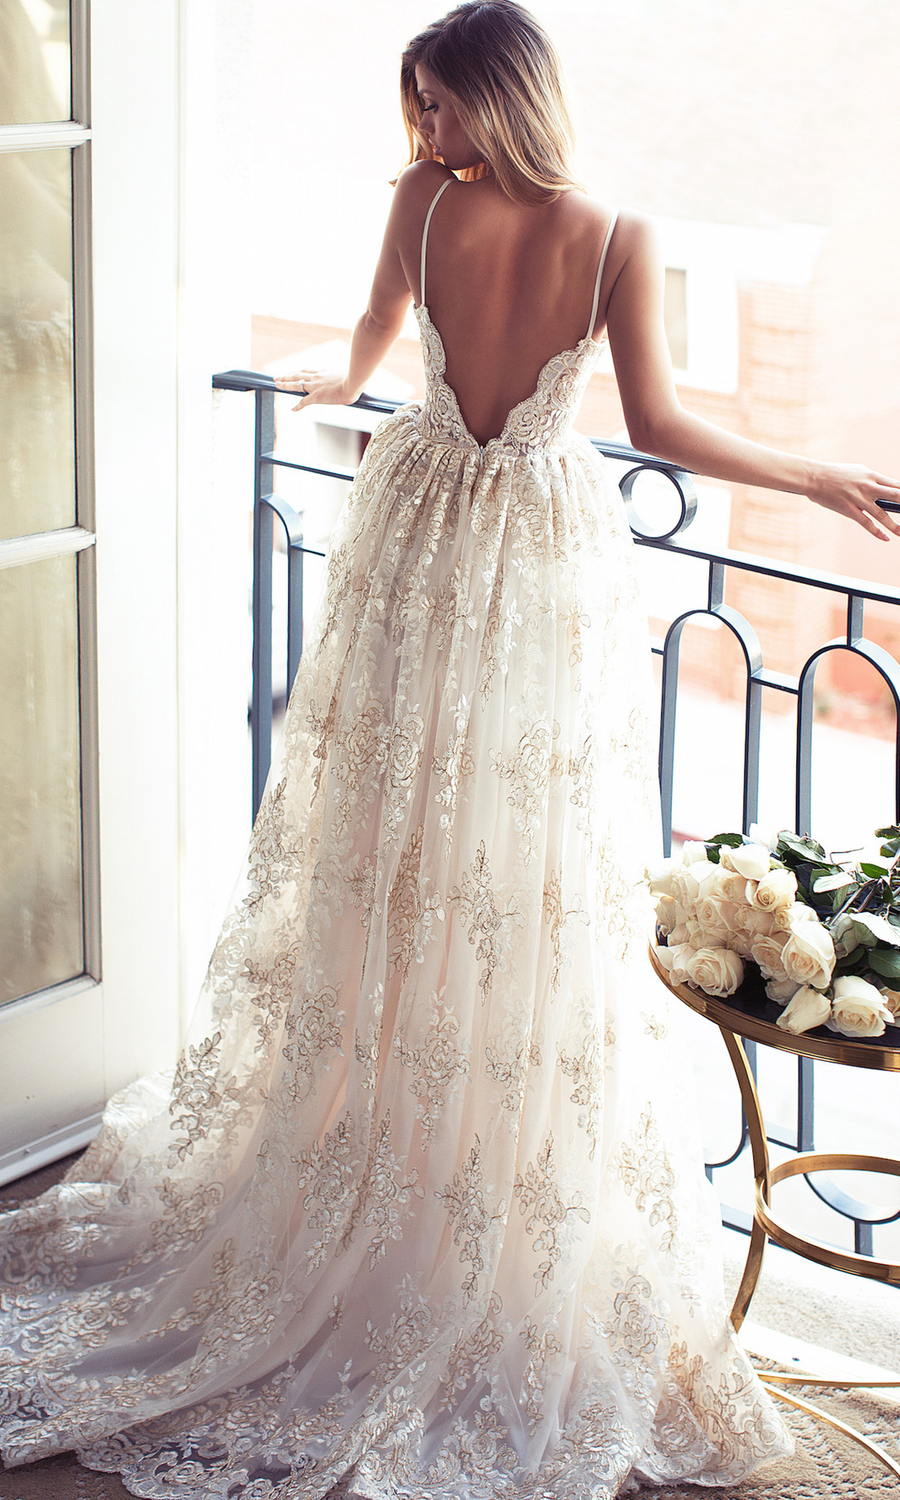 White puffy wedding dresses  Lurelly Belle Lookbook  Weddings dresses cale flower and more